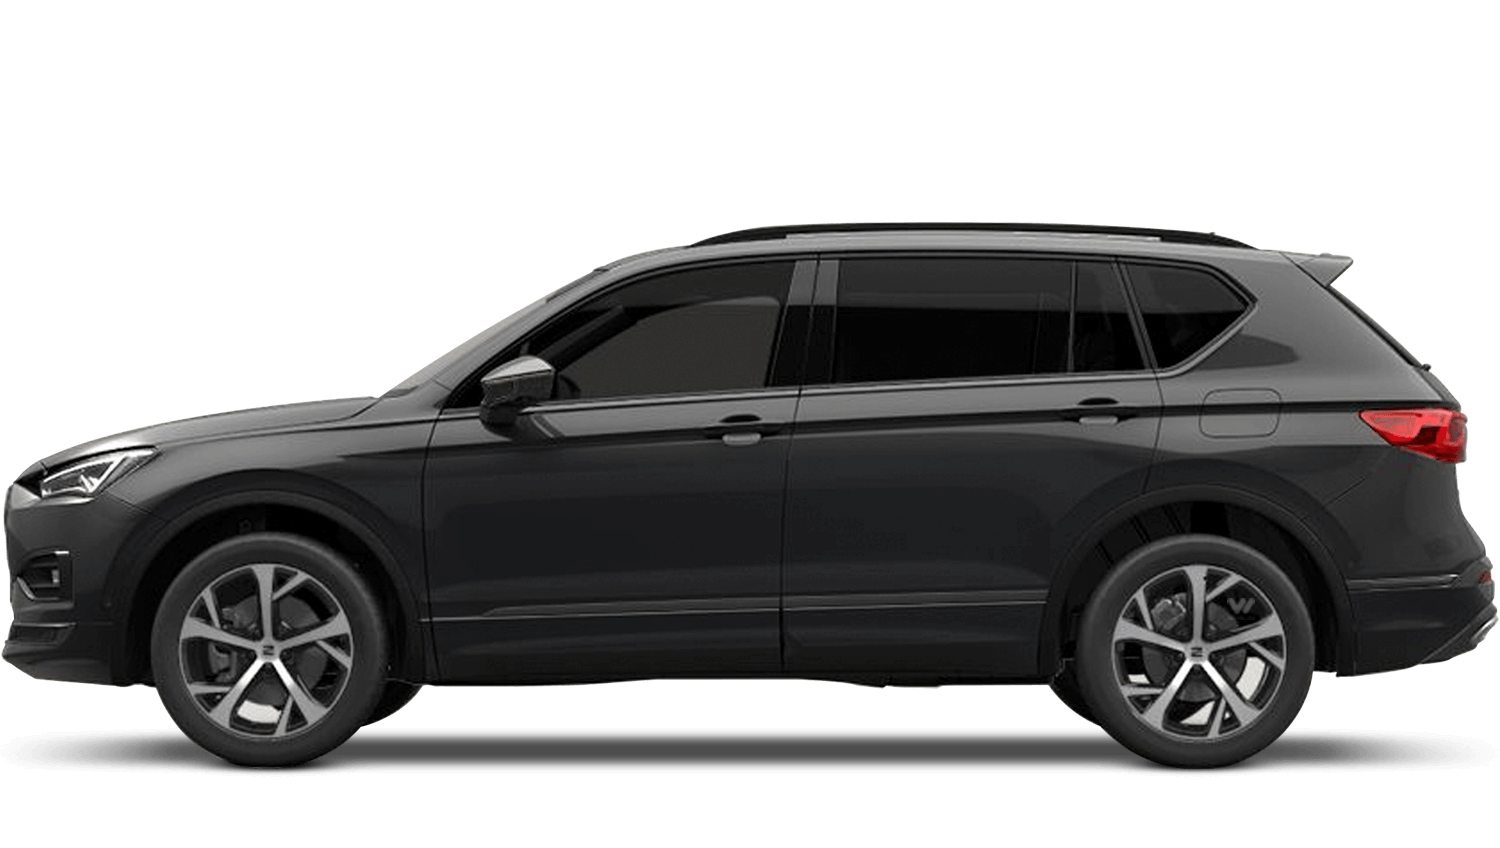 SEAT Tarraco PCP Finance Offers